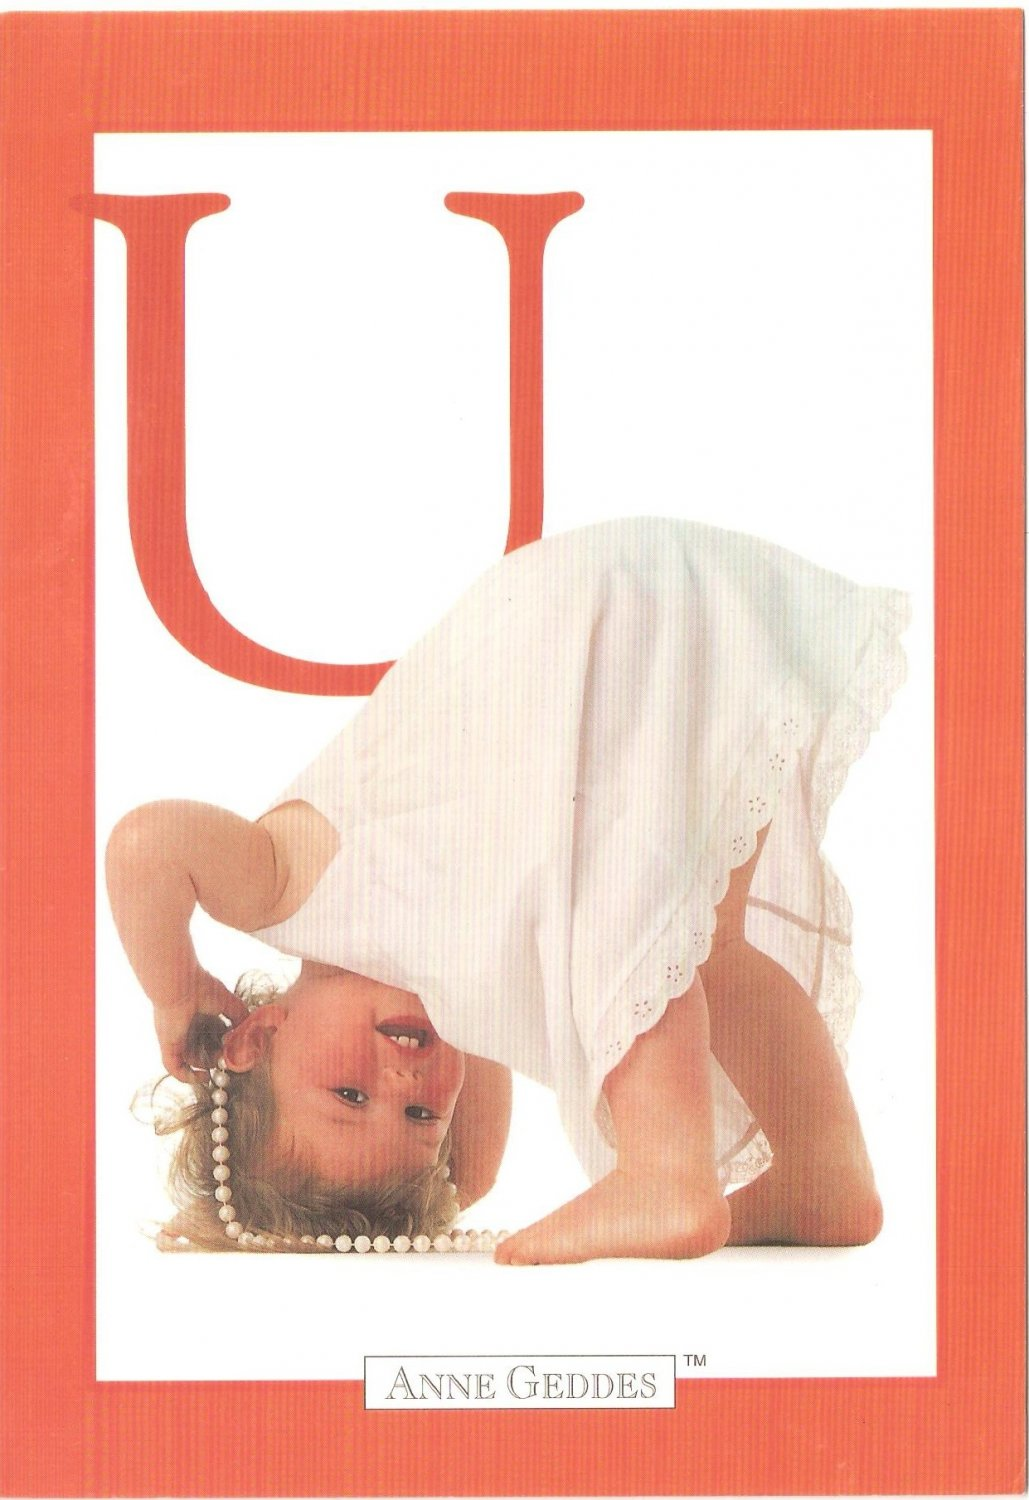 Anne Geddes Postcard 1995 605-074 U is for Upside Down Baby 4x6